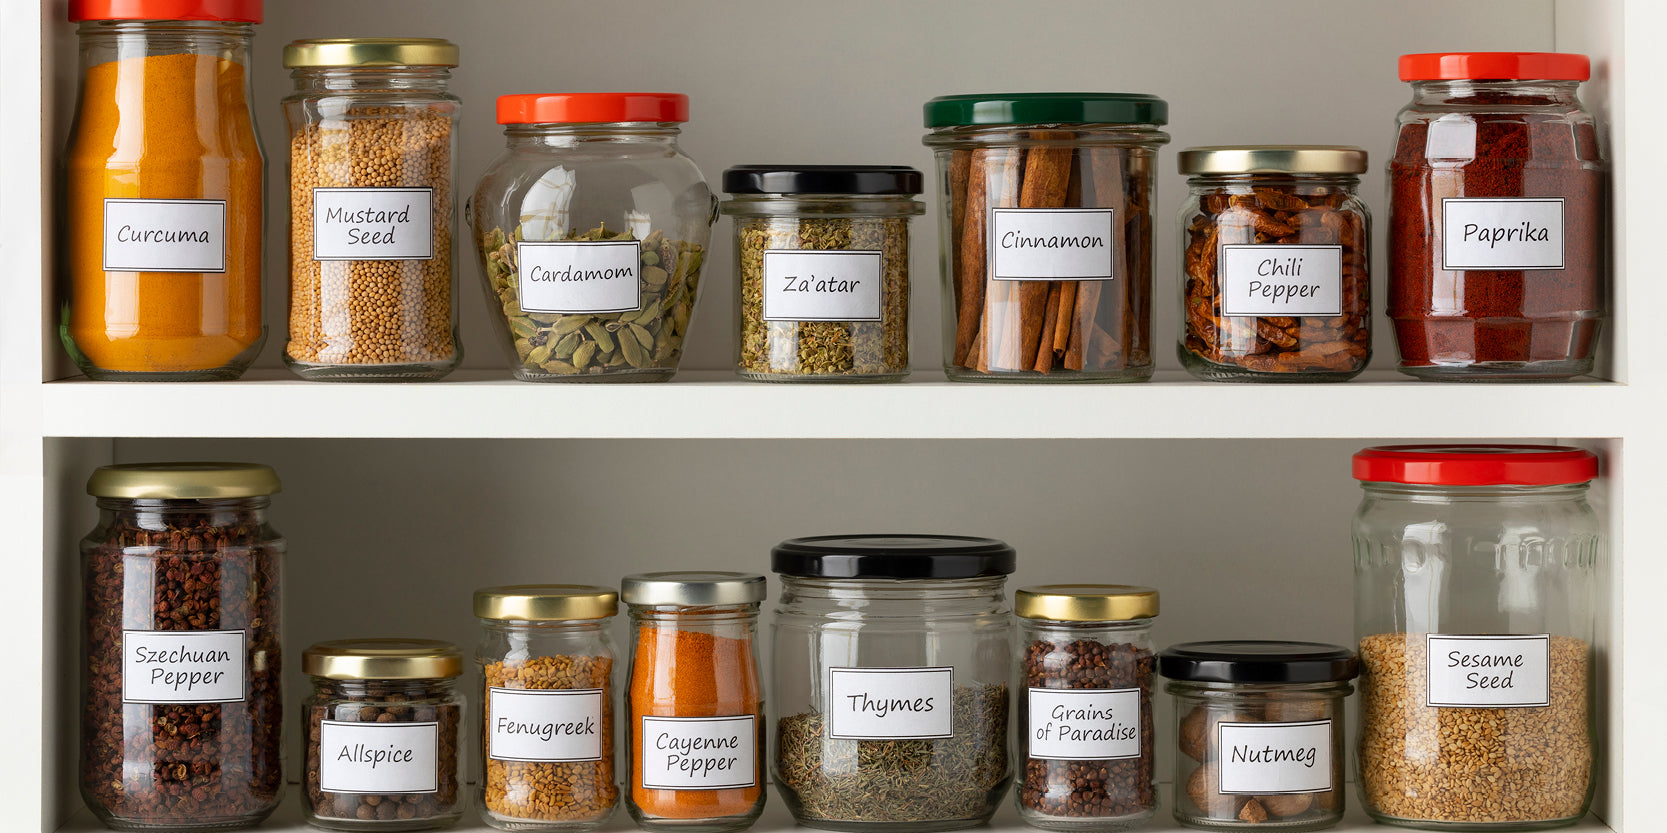 Reusing Glass Jars - What Does Zero Waste Mean? How To Become Zero Waste